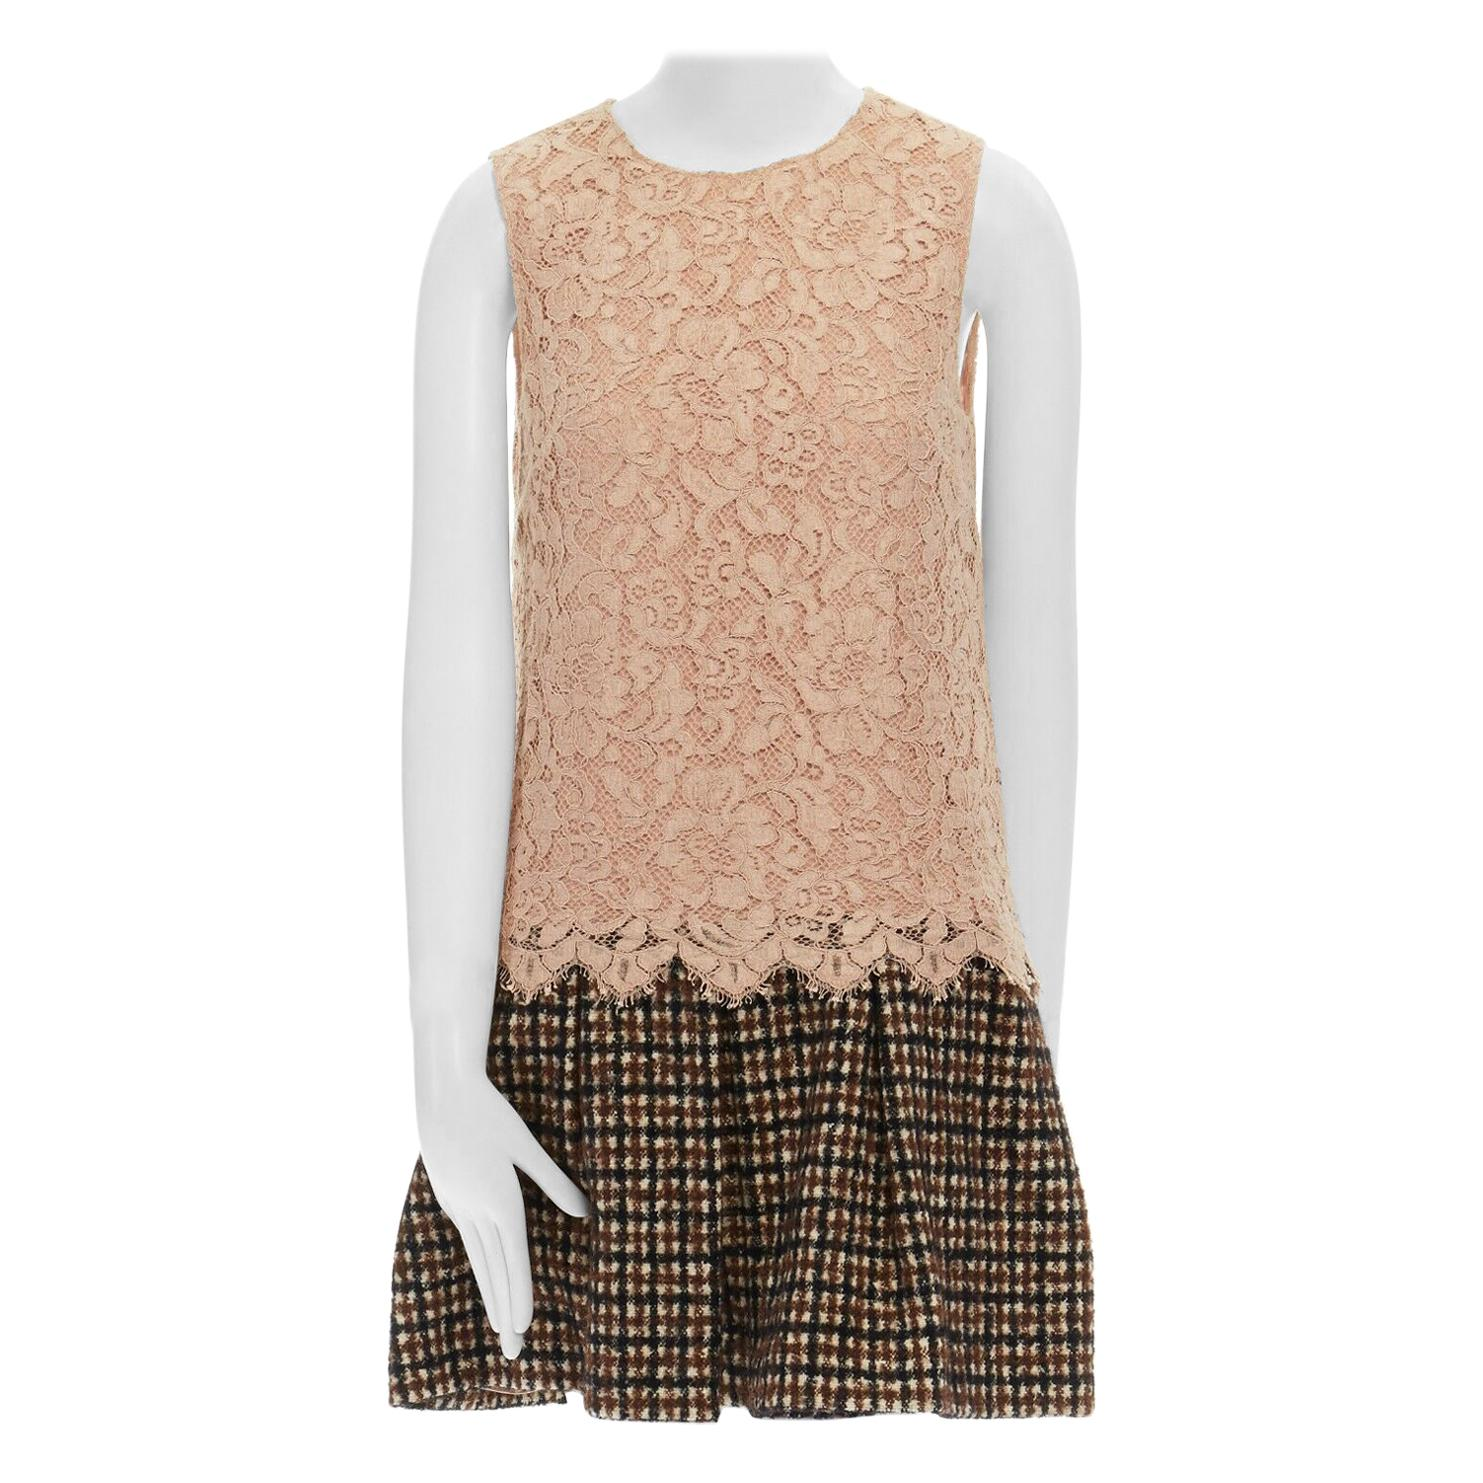 DOLCE GABBANA nude floral lace brown checked wool boucle skirt cocktail dress S